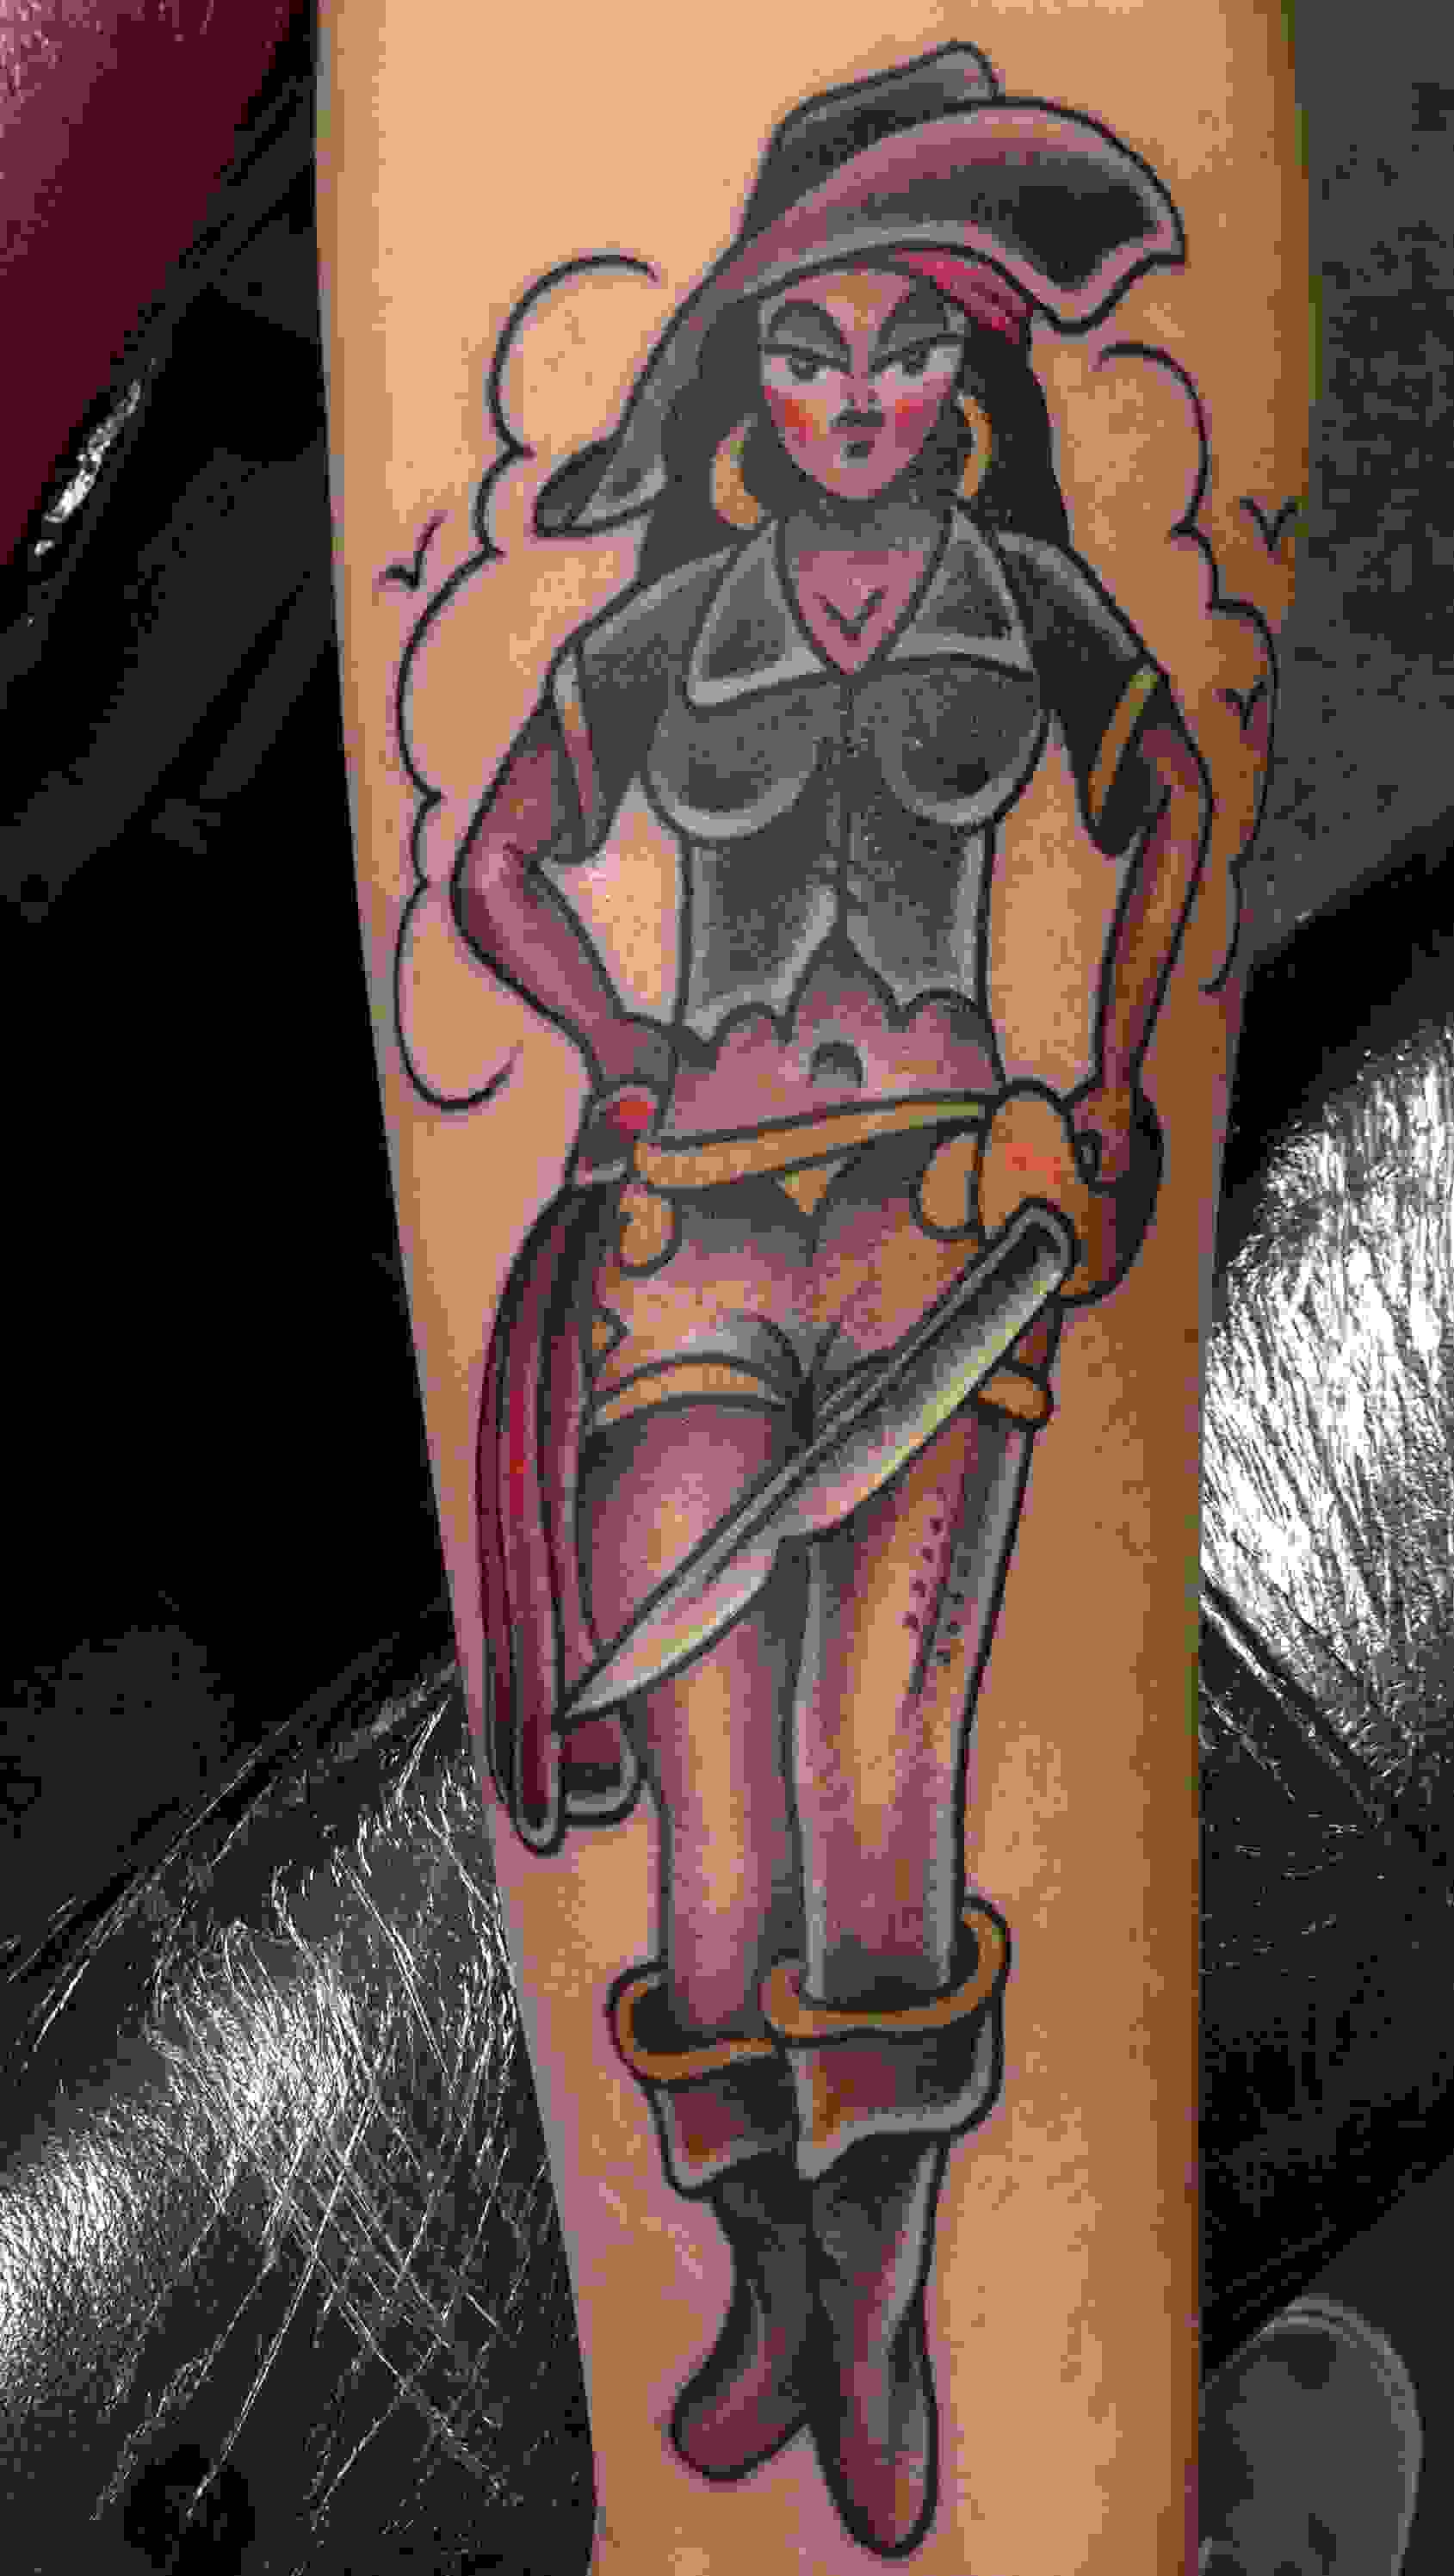 Pirate Girl With The Sword Tattoo